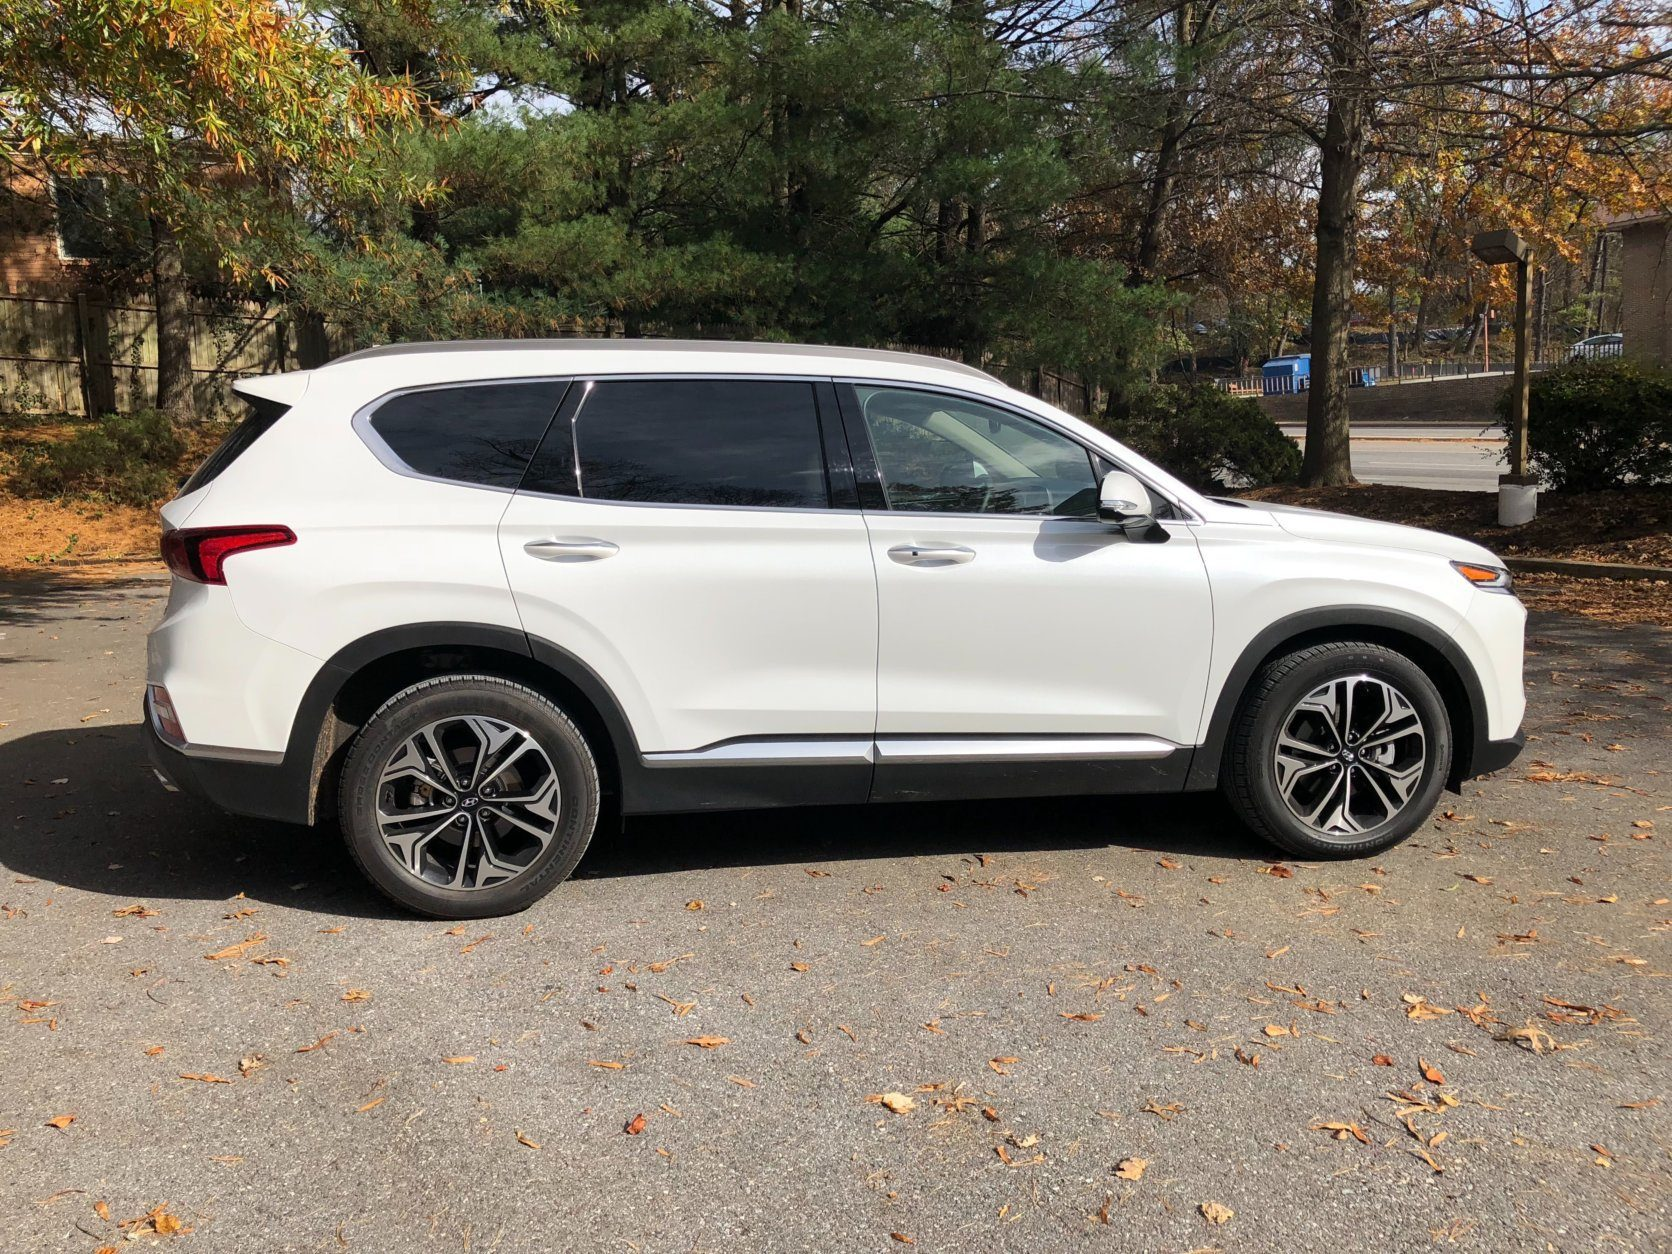 <p>Looking from the side, the Santa Fe reveals large 19-inch wheels that are a bit busy for some onlookers when I asked. No boring flat body here, cheat lines top and bottom add visual punch and hold your attention.</p> <p>The Quartz White Pearl paint on the Hyundai looks sharp. There are just enough black lower body moldings and bright trim pieces to make the color pop.</p>